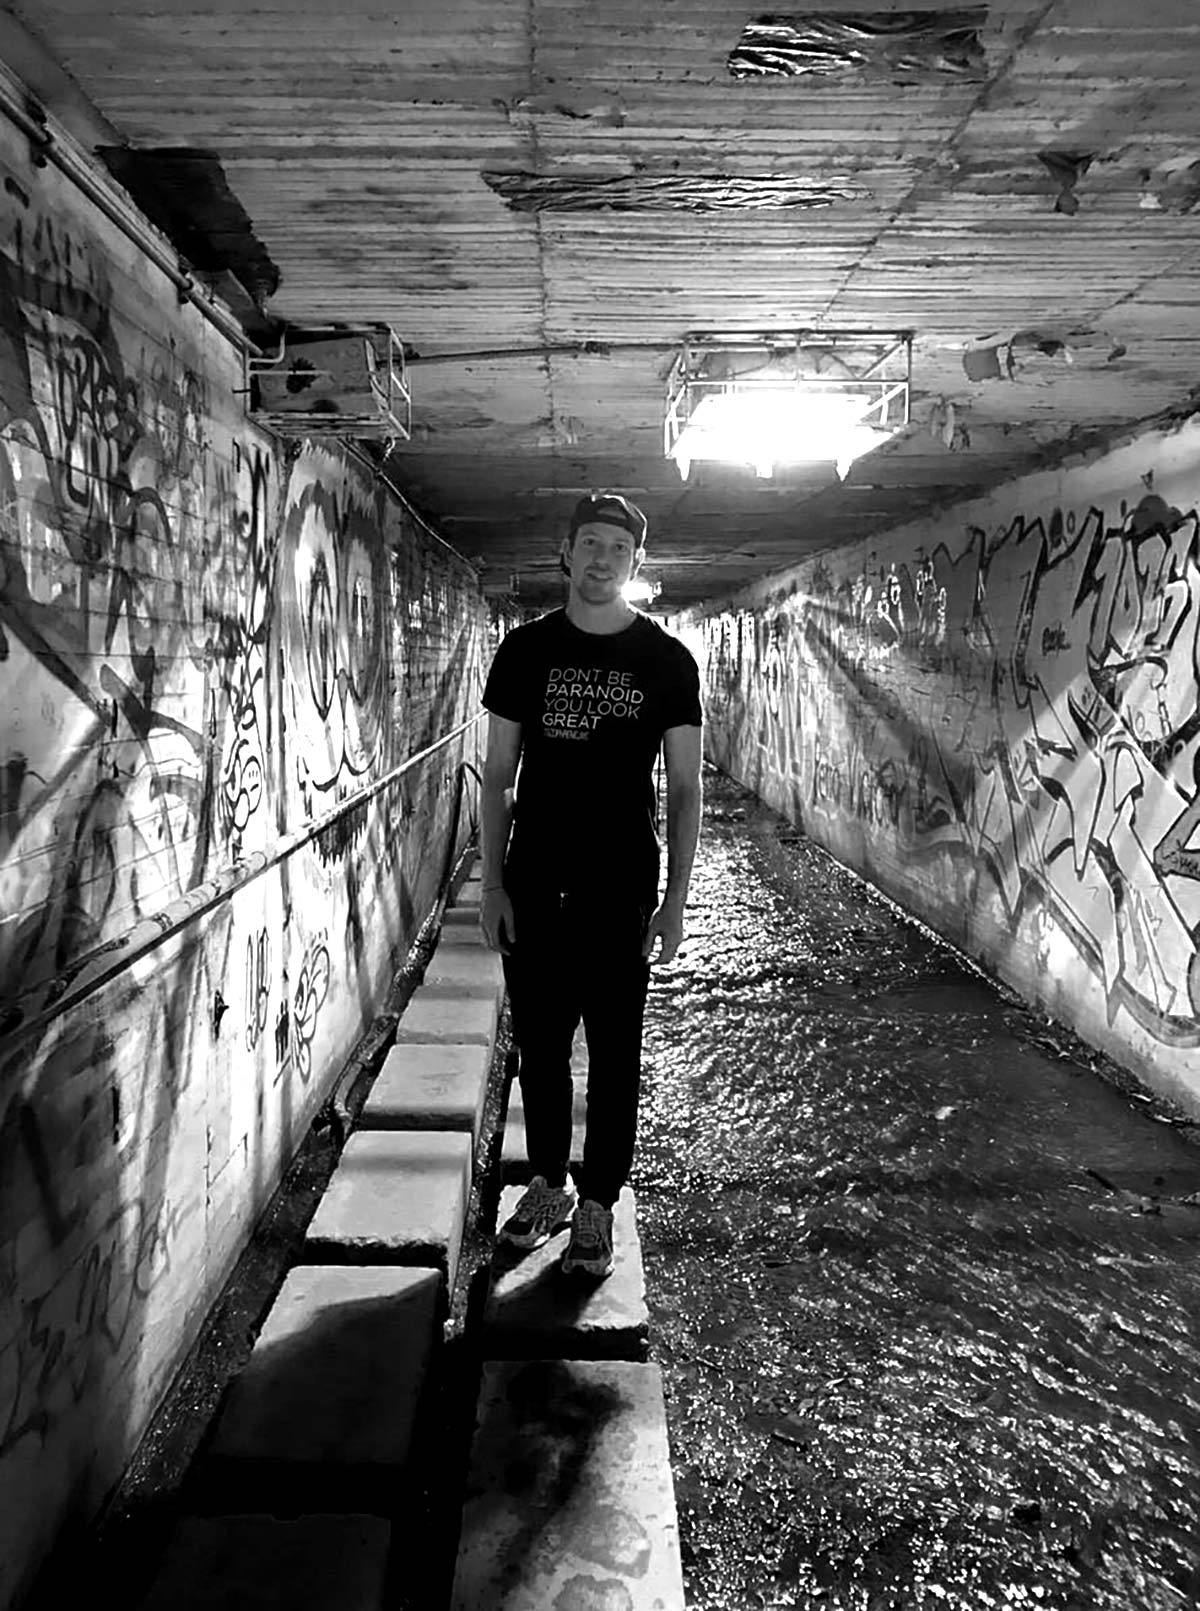 , Dont Be Paranoid! All over the World!, Schizophrenic.NYC Mental Health Clothing Brand, Schizophrenic.NYC Mental Health Clothing Brand